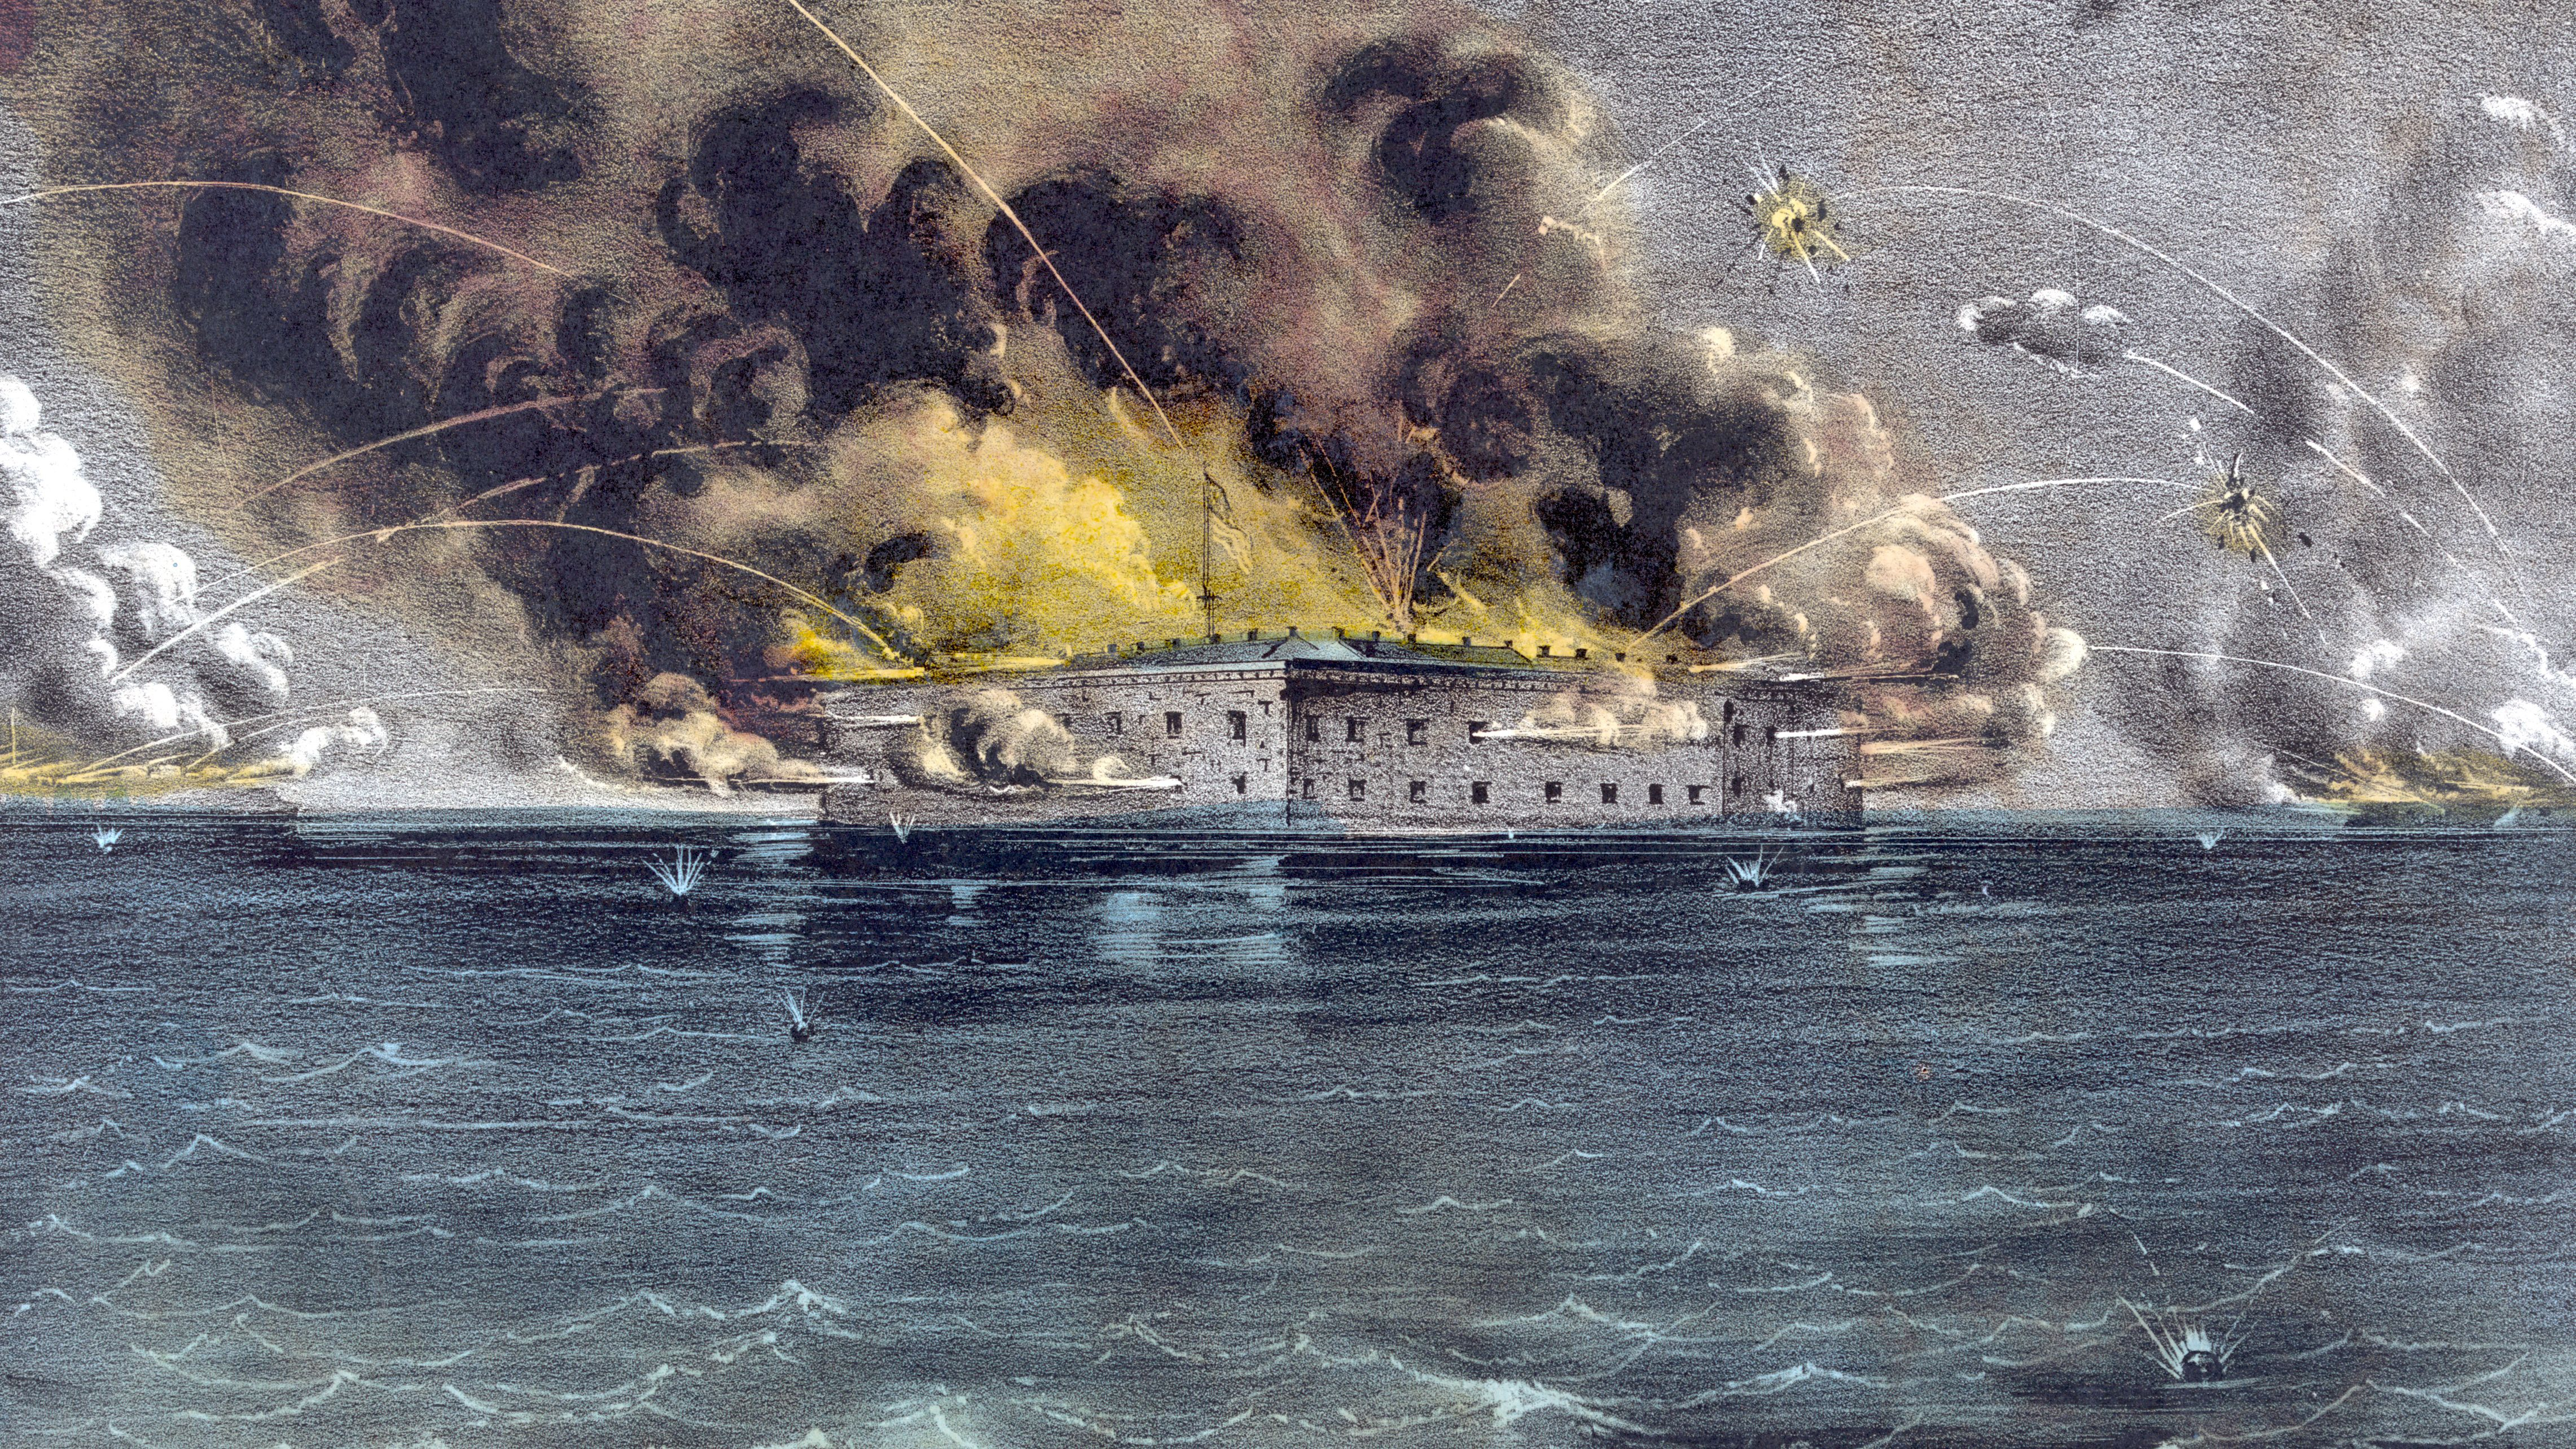 Attack on Fort Sumter Began the Civil War in 1861